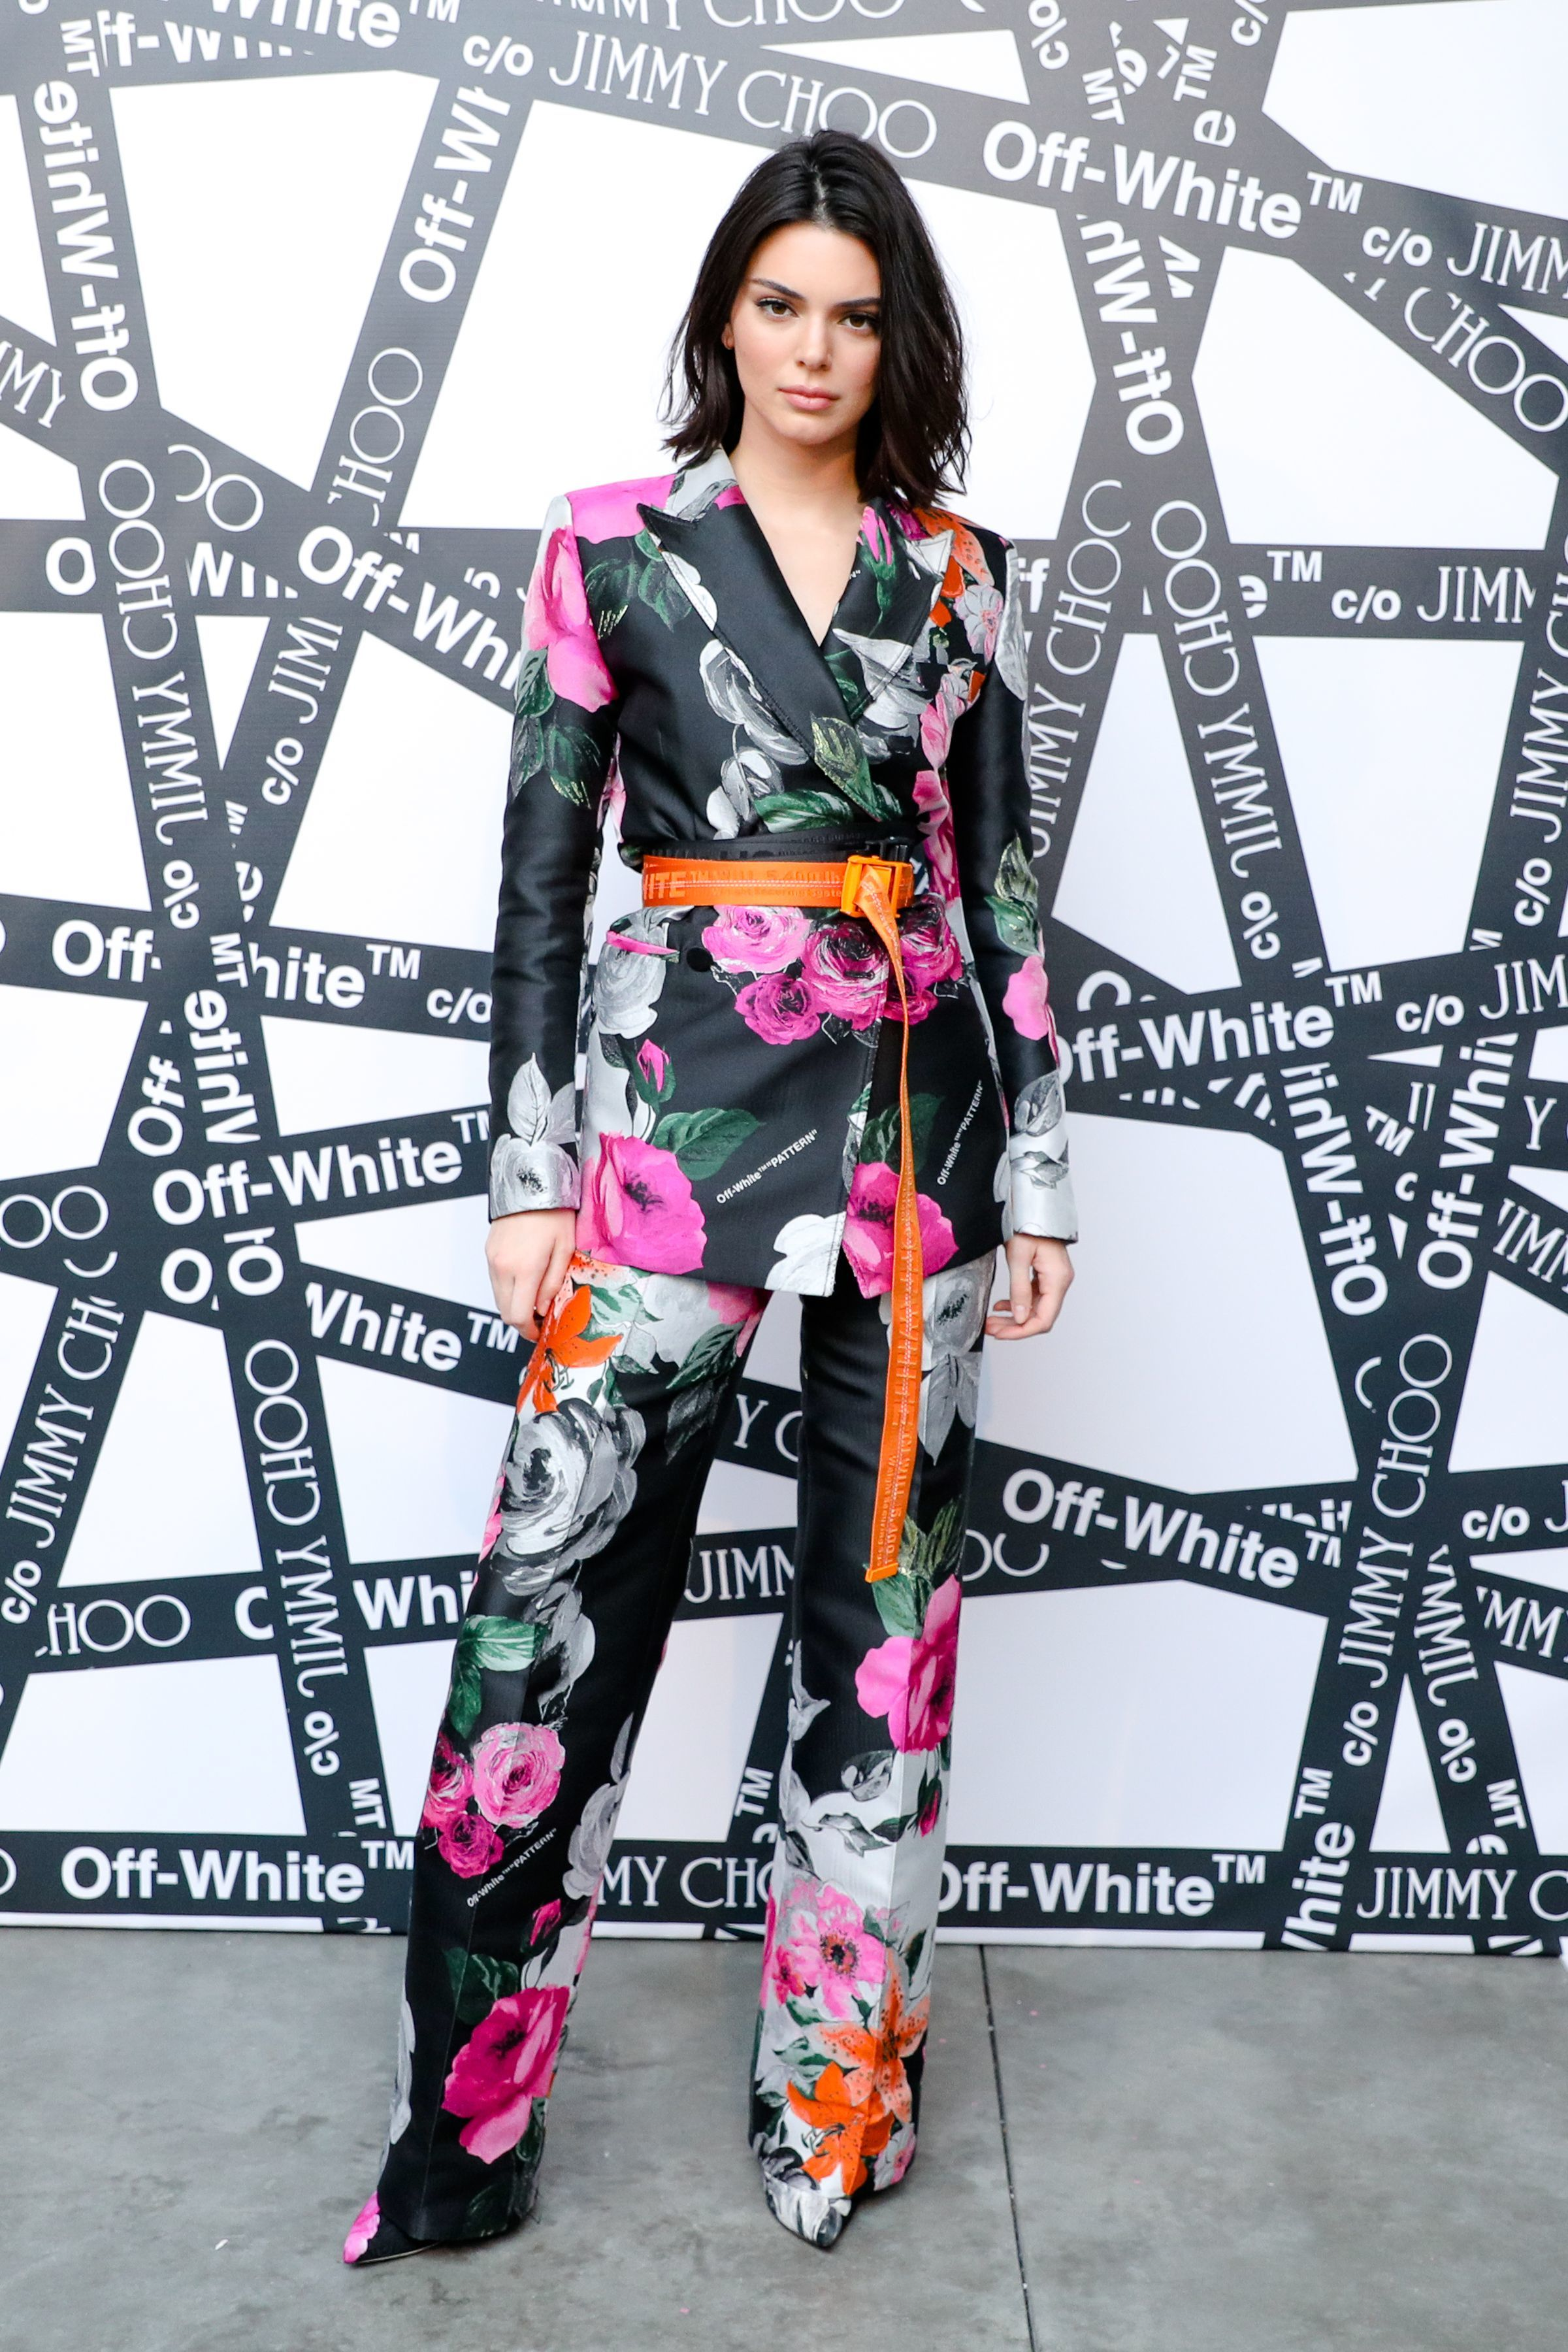 Kendall Jenner attends the Sandra Choi and Virgil Abloh dinner celebrating The Off White C/O Jimmy Choo Collection at New York Fashion Week on Feb. 11, 2018.